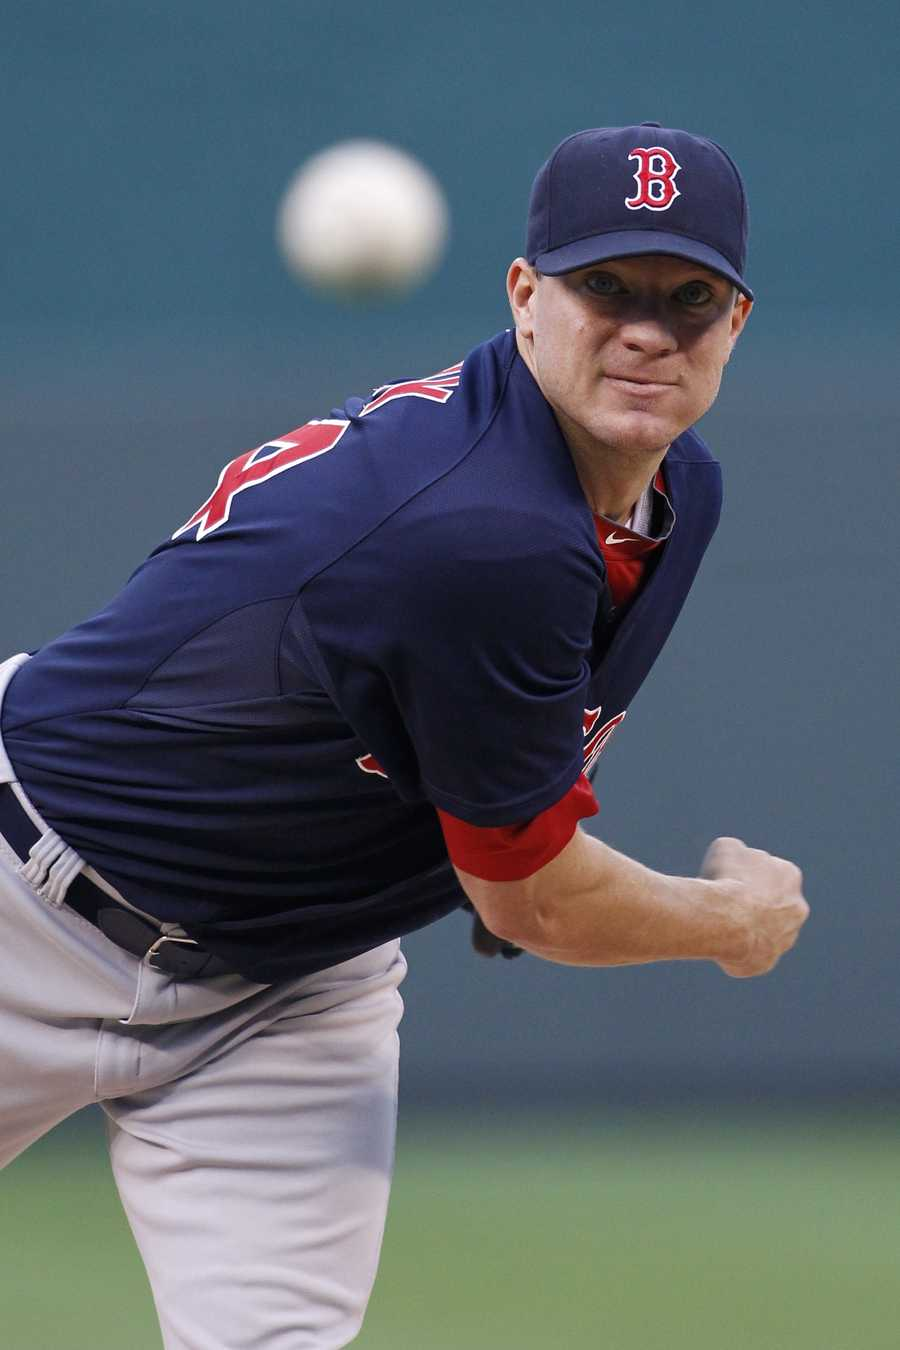 Before coming to Boston, Peavy pitched for the San Diego Padres and Chicago White Sox.